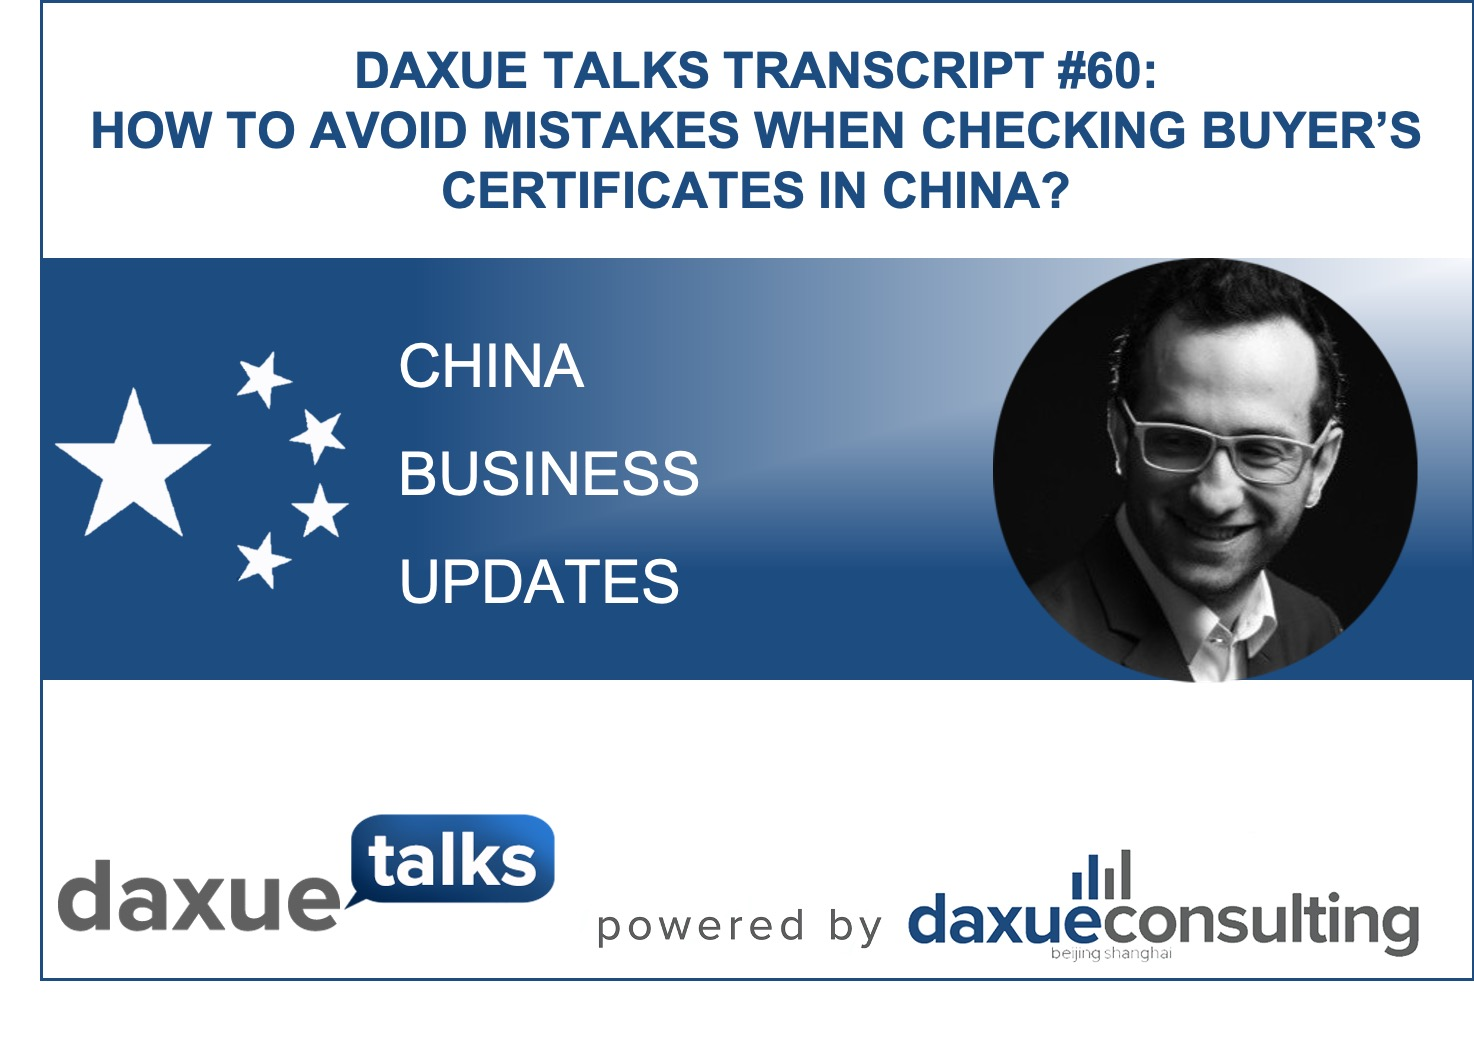 a checking buyer's certificates in China